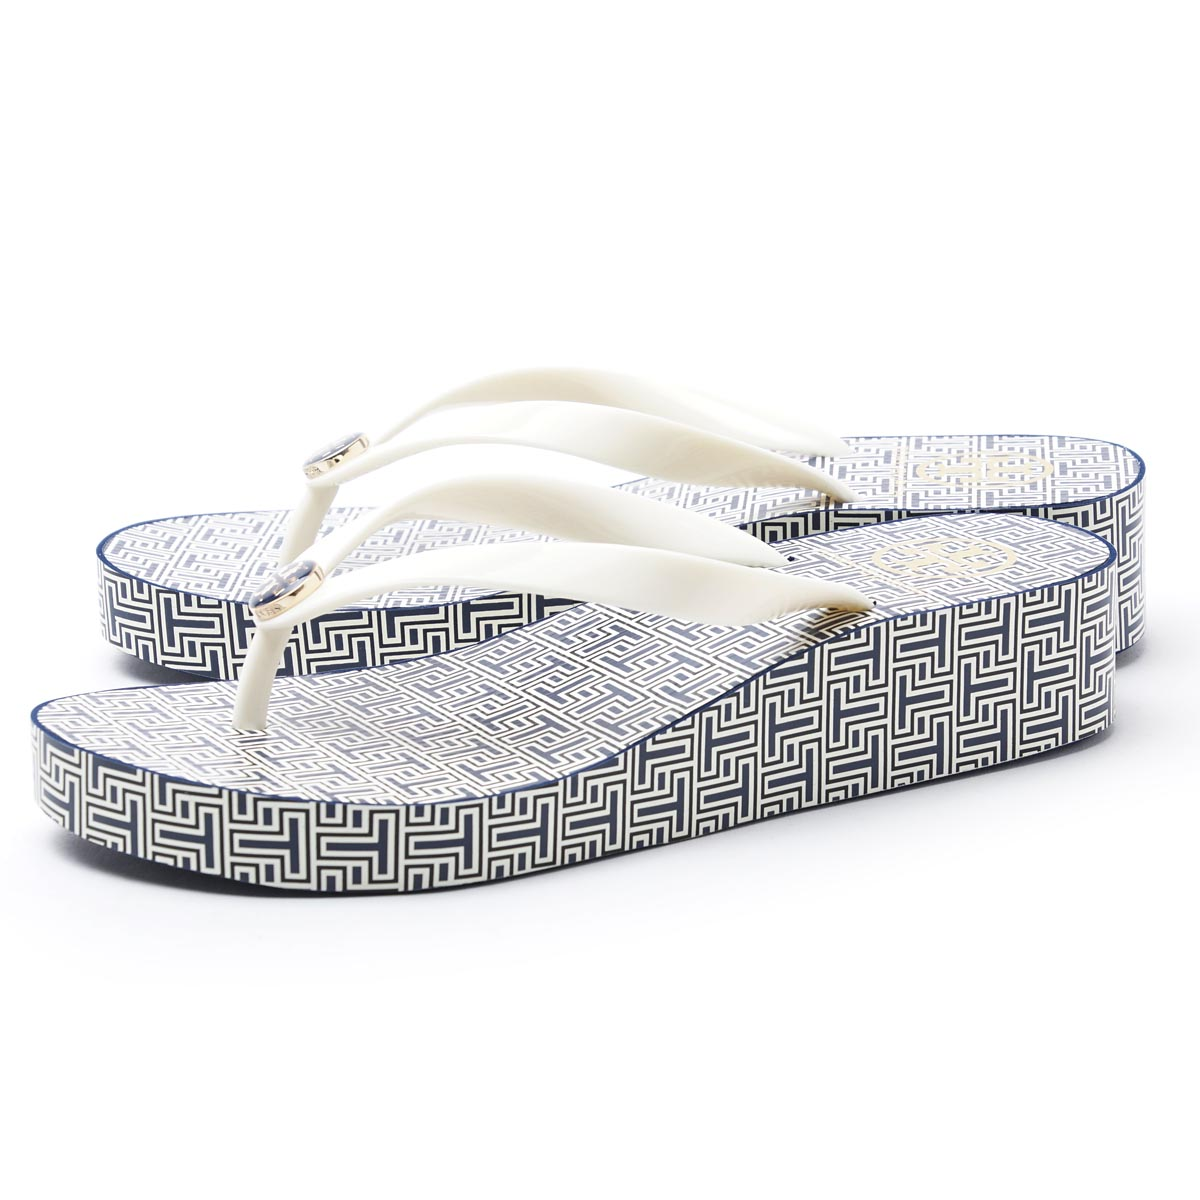 toribachi TORY BURCH Beach sandal WEDGE FLIP FLOP SPRING T SMALL×NEW IVORY蓝色派37477 415女士